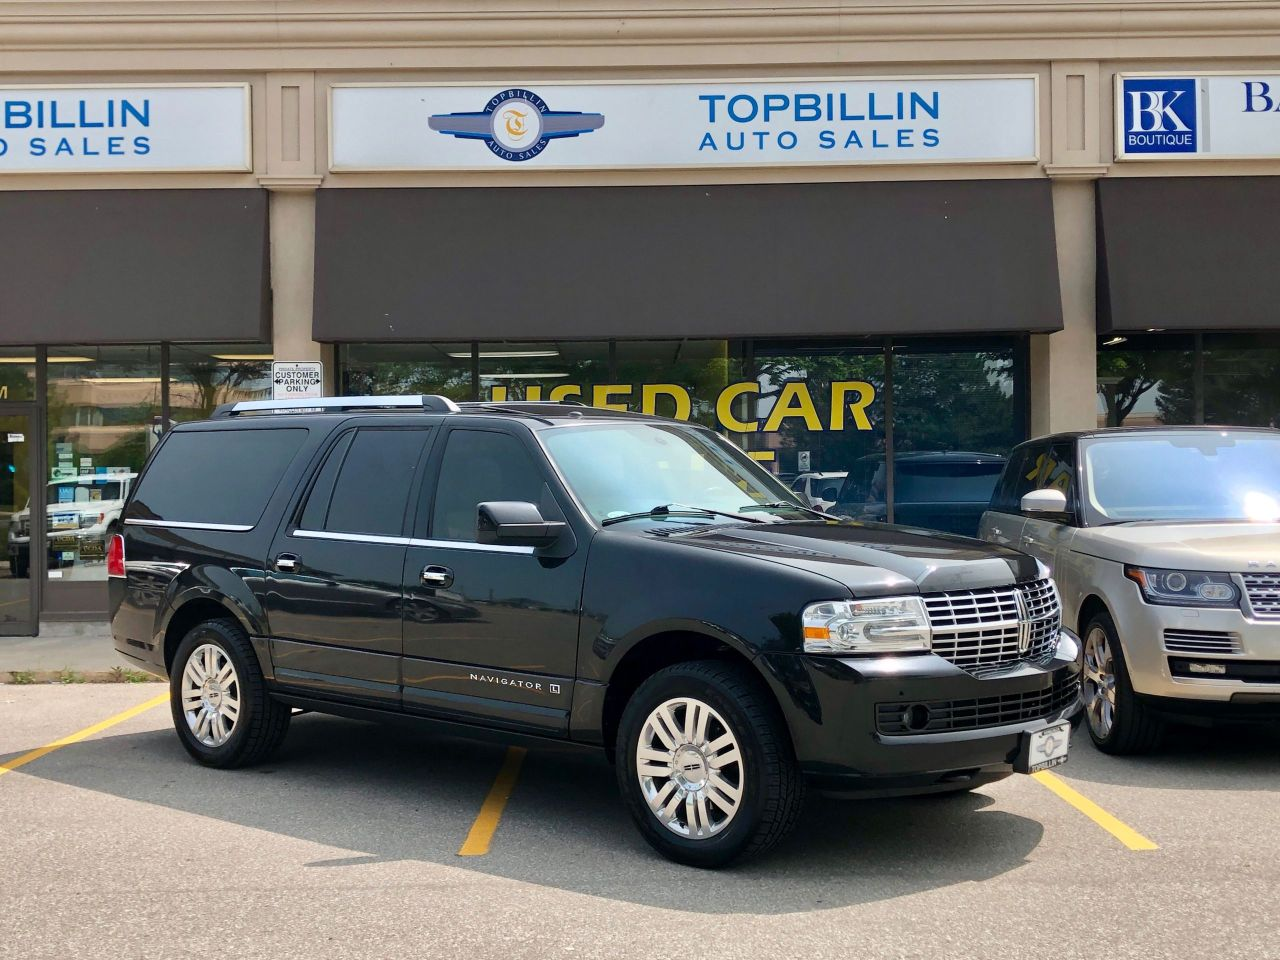 2013 Lincoln Navigator L Limited Edition, Fully Loaded